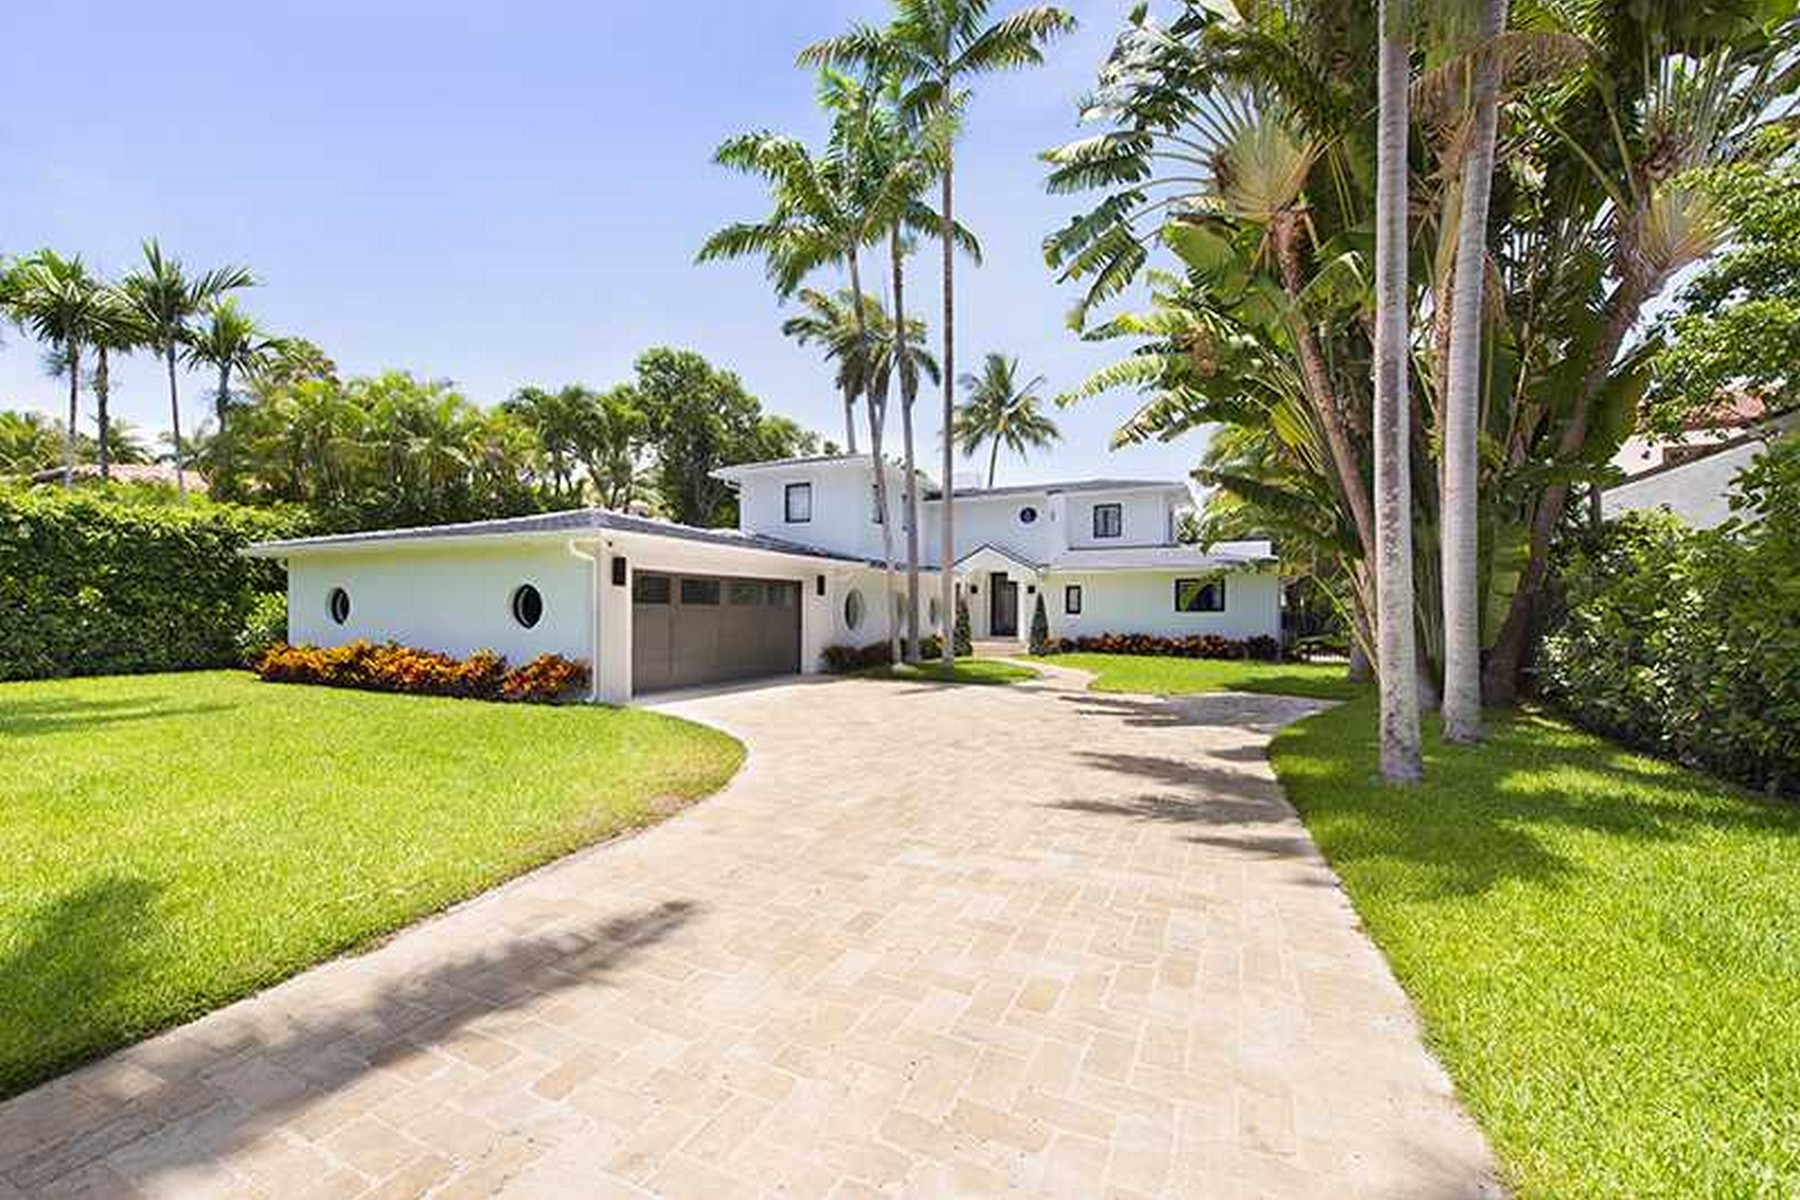 Single Family Home for Sale at 1611 W 24 ST Miami Beach, Florida, 33140 United States